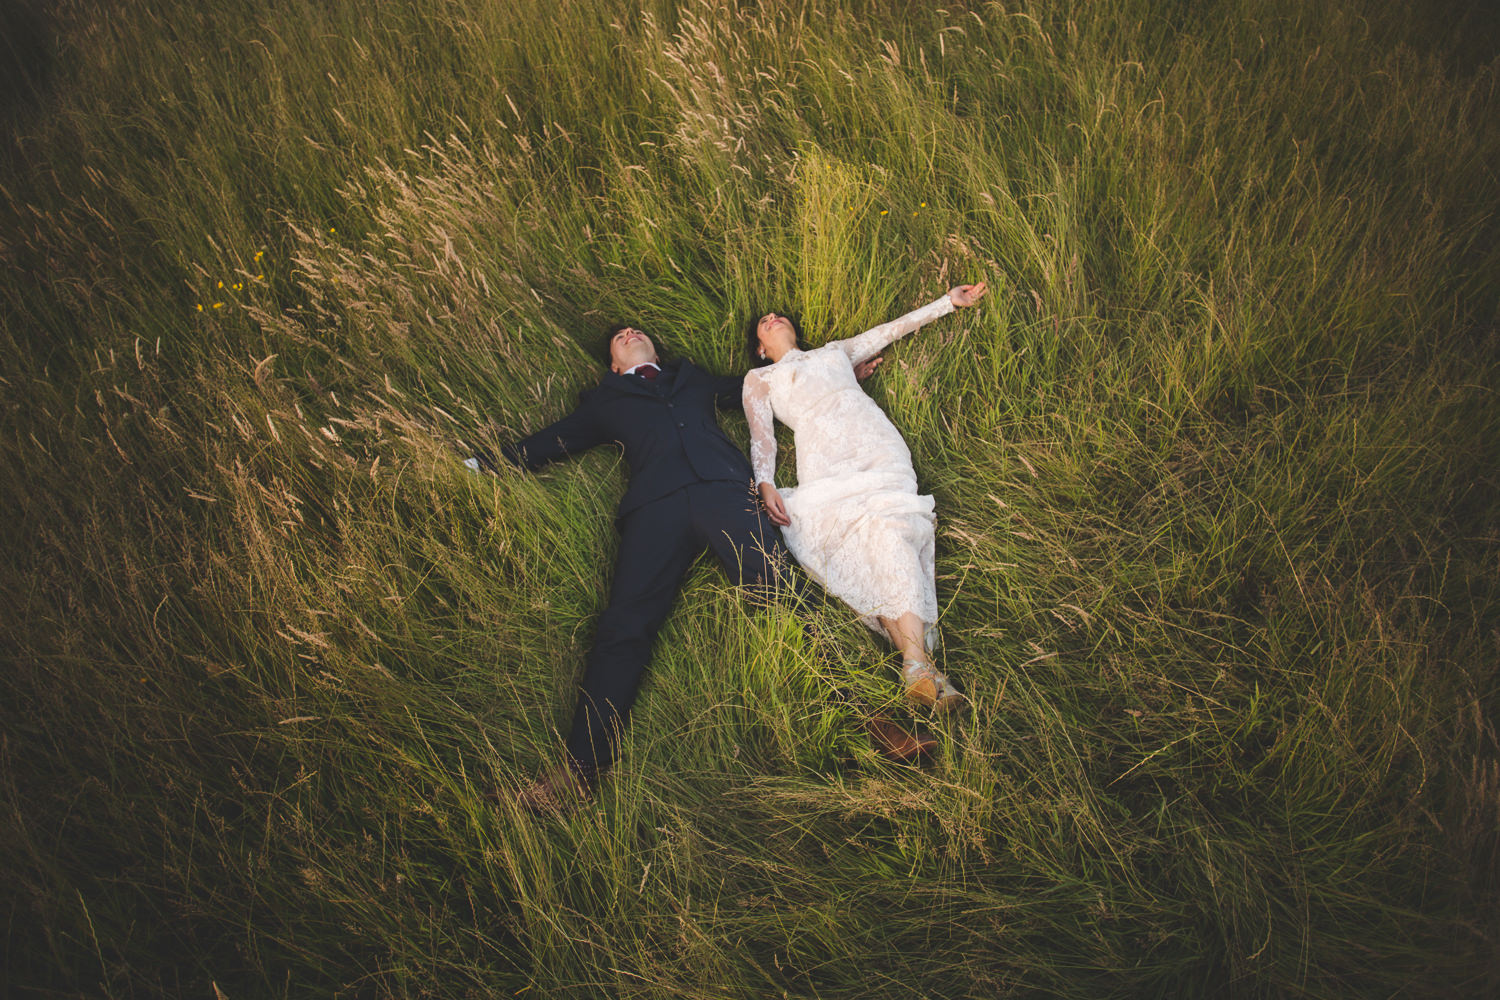 Fun natural wedding photography